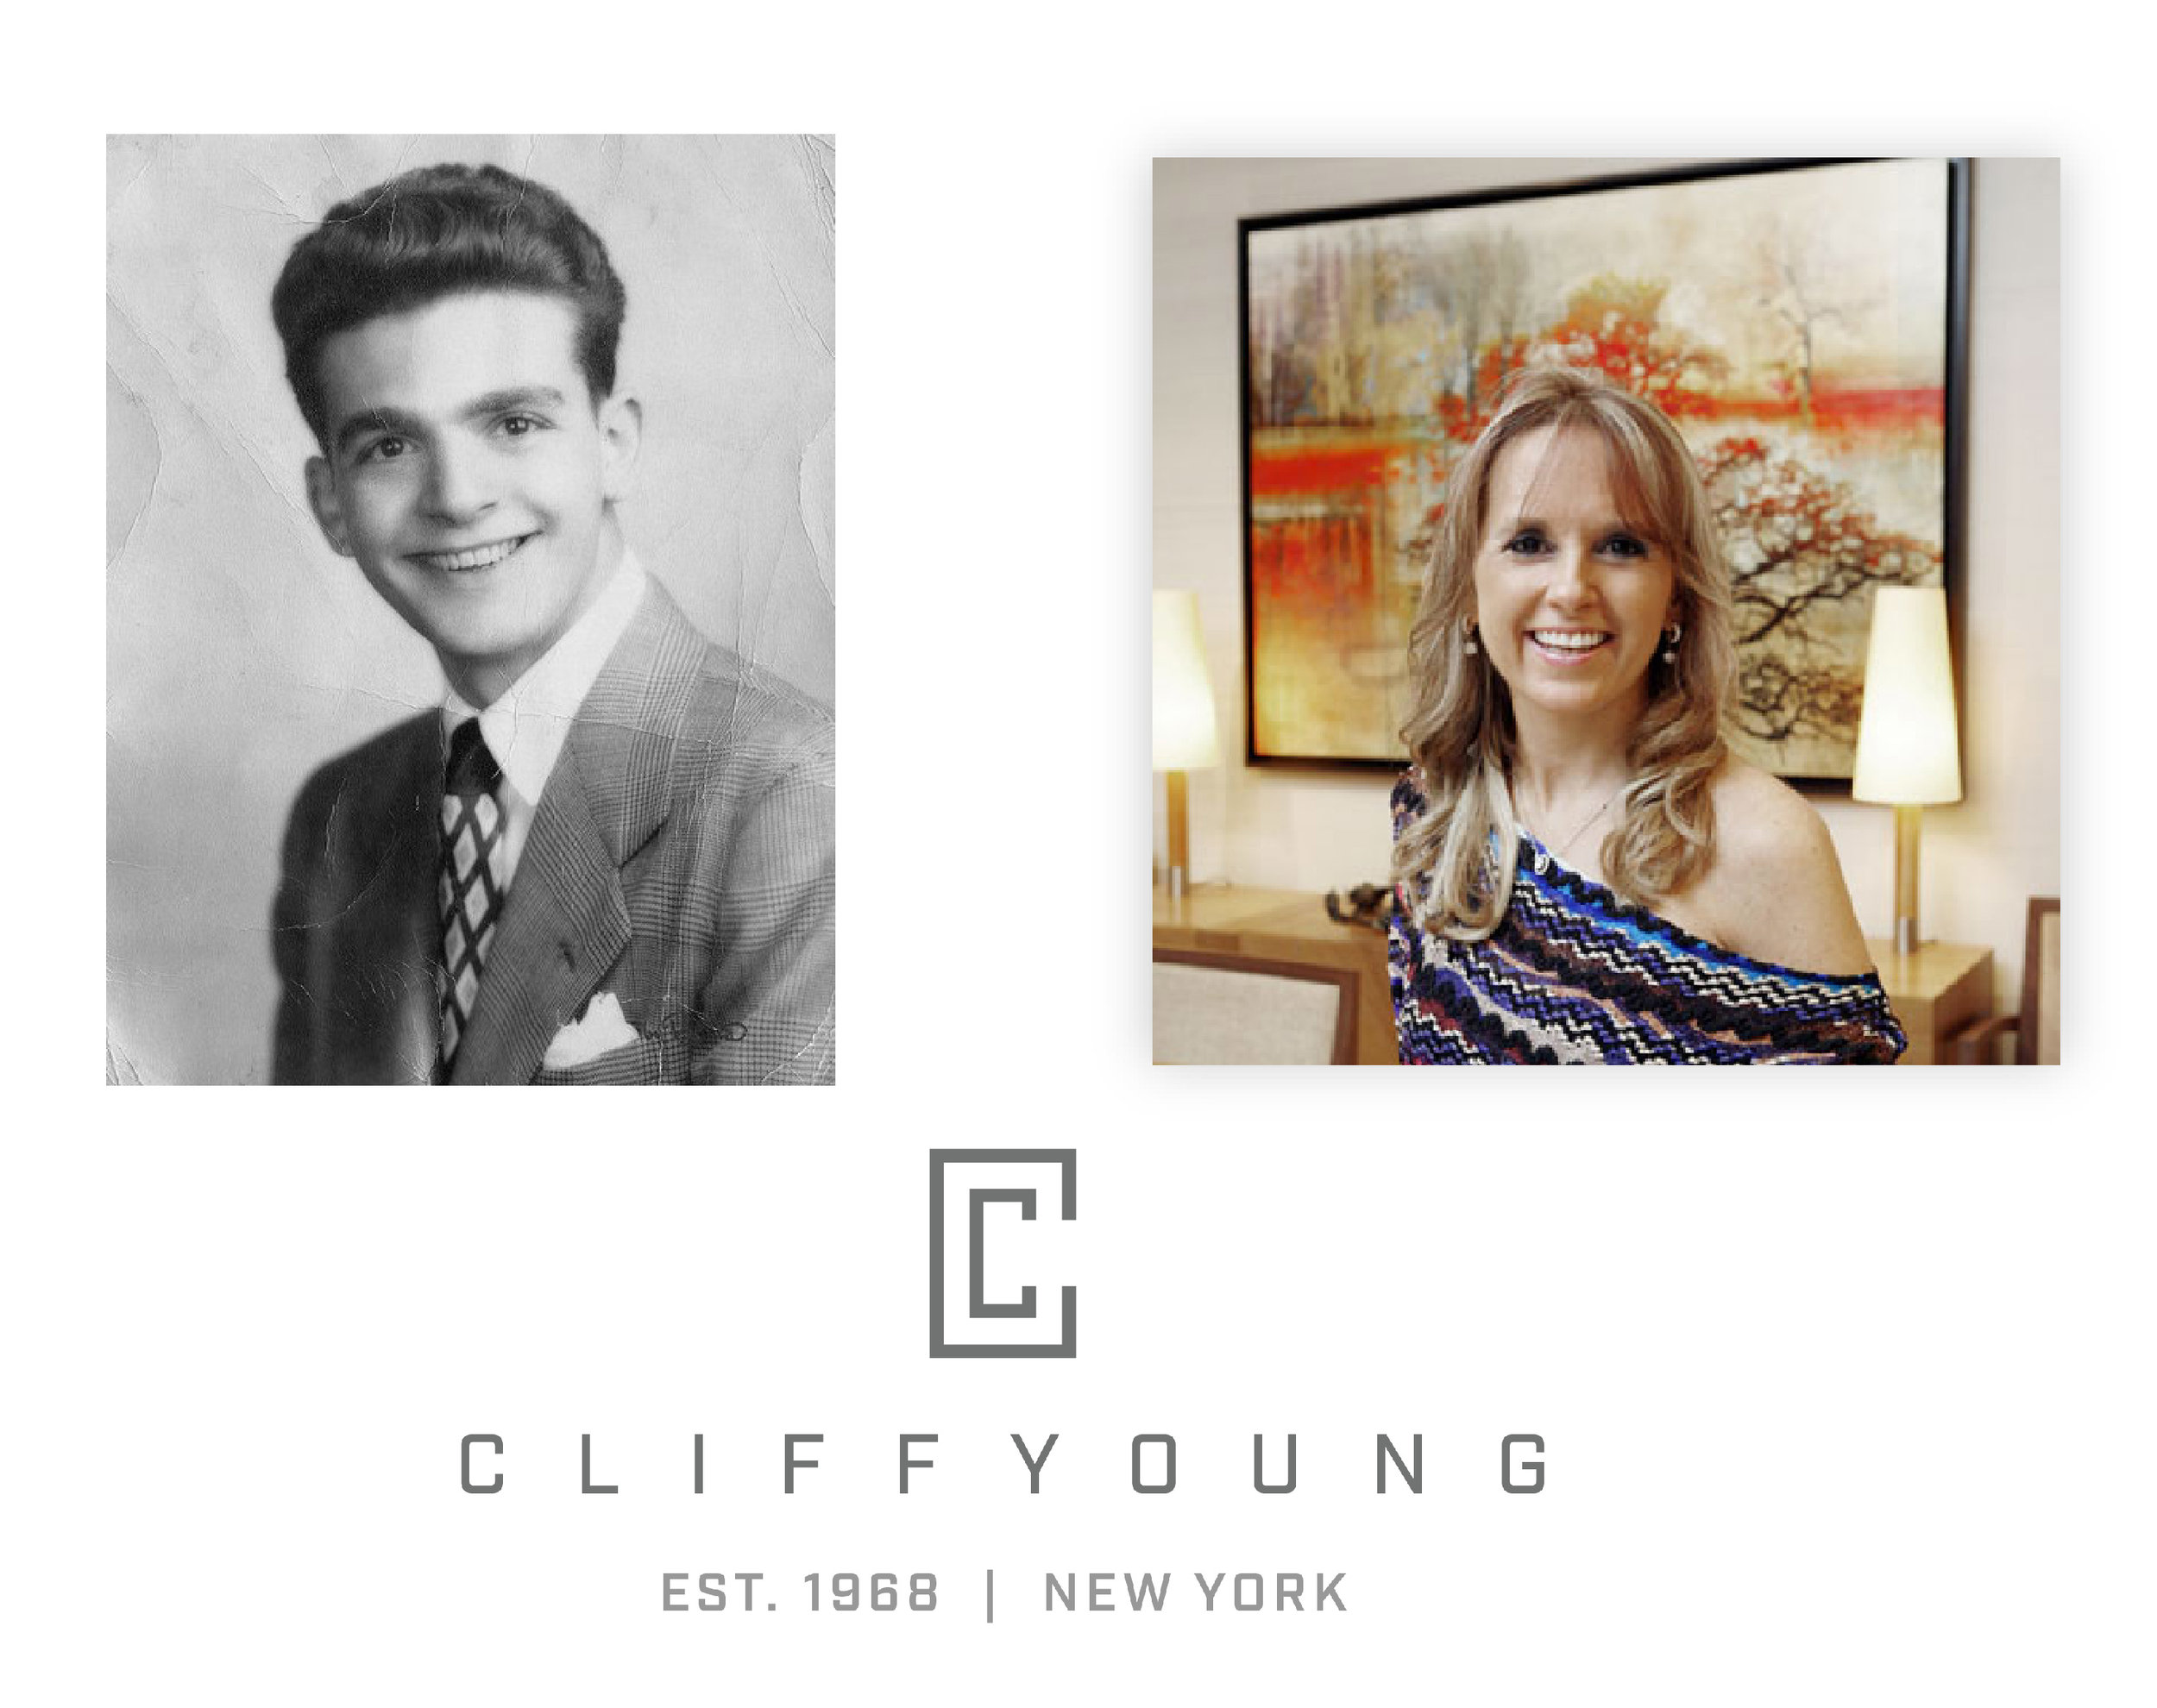 Cliff Young Ltd. founder Cliff Young + daughter & current CEO Leslie Azzolina Zarra